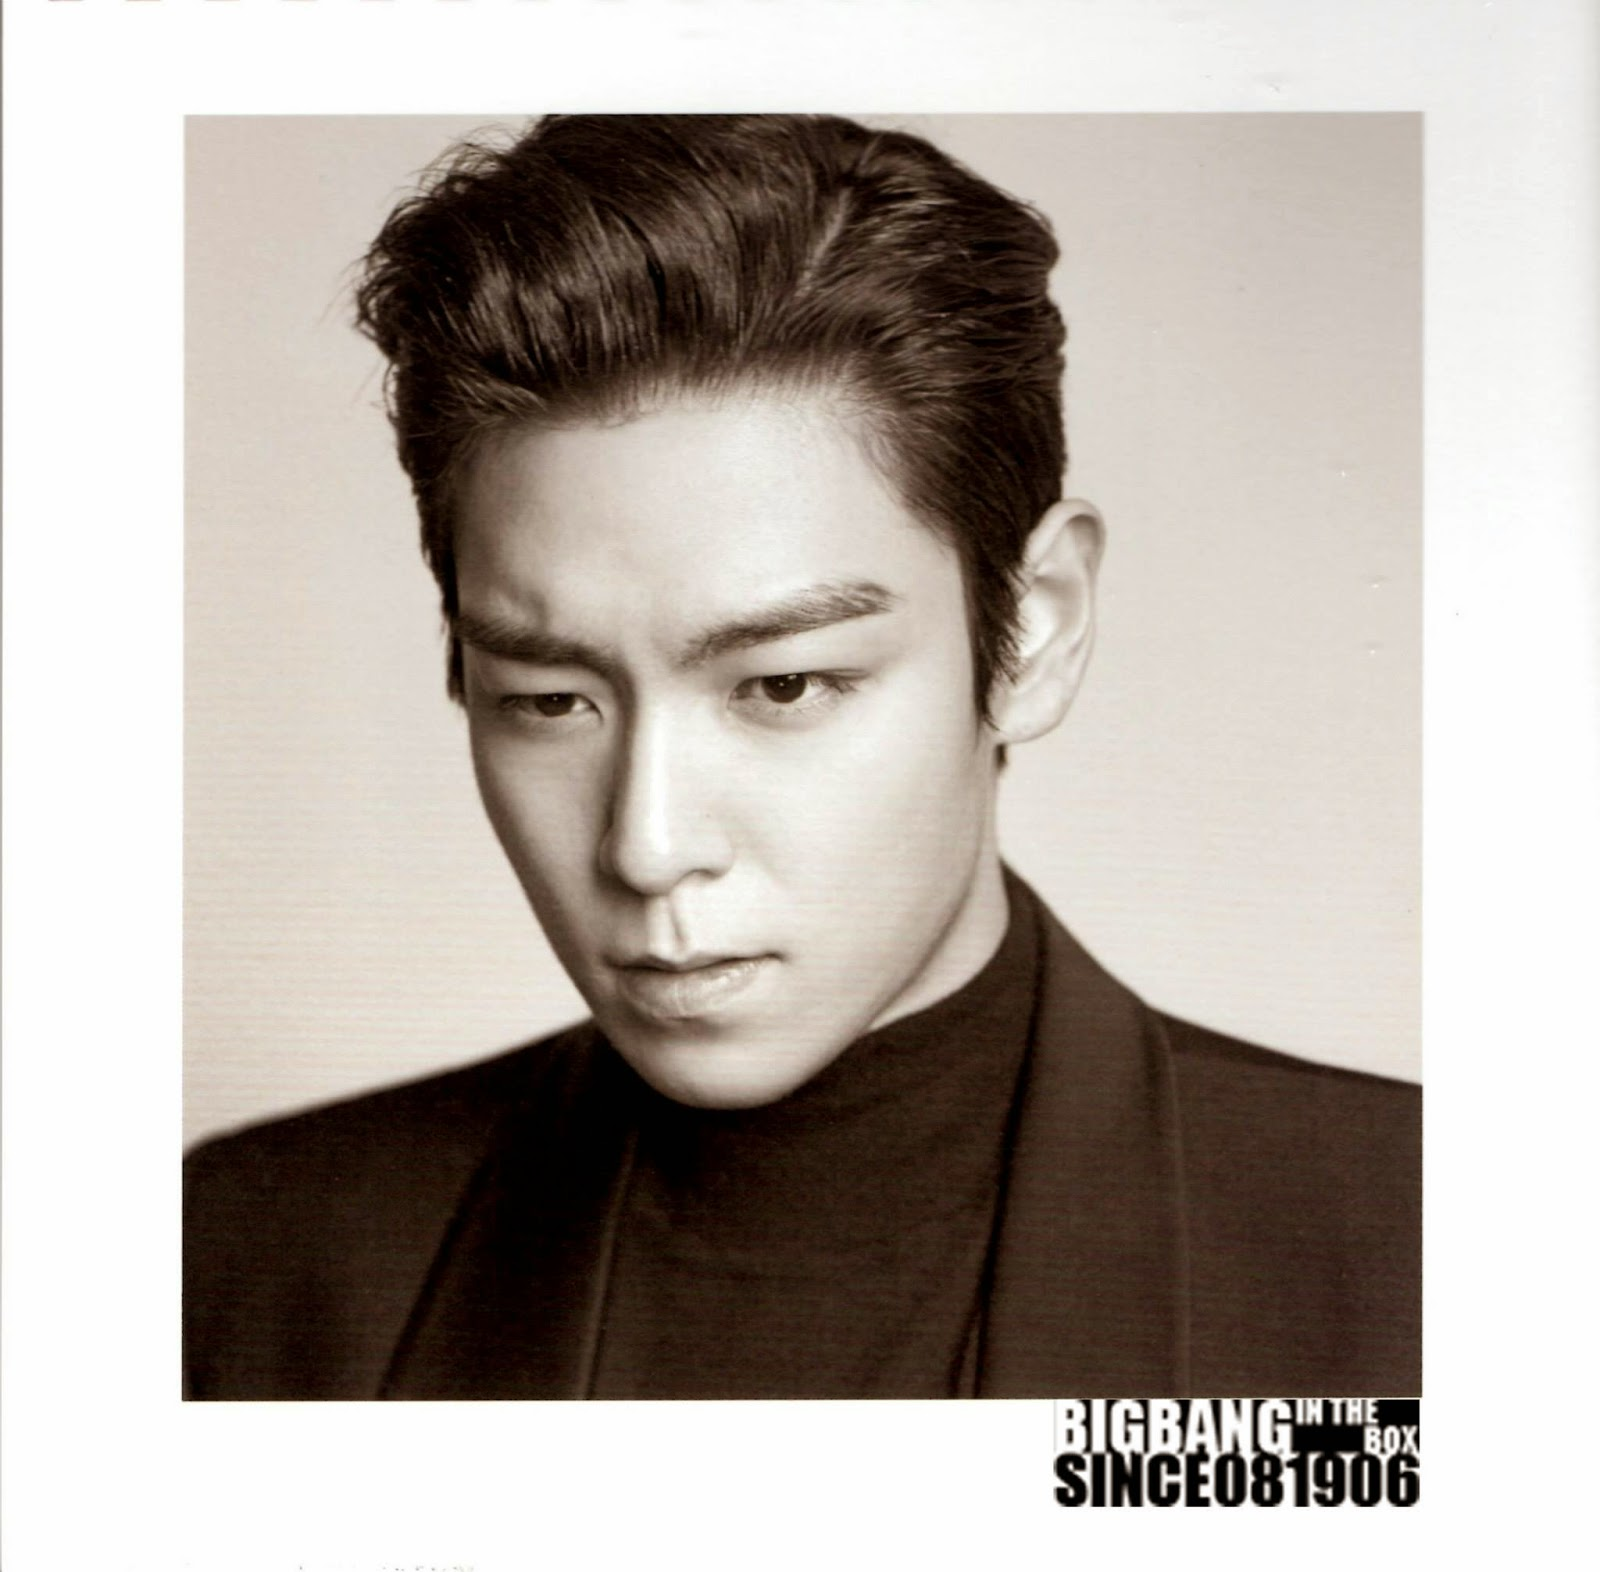 Scans: Big Bang's 2015 Welcoming Collection [PHOTOS]  Scans: Big Bang's 2015 Welcoming Collection [PHOTOS]  Scans: Big Bang's 2015 Welcoming Collection [PHOTOS]  Scans: Big Bang's 2015 Welcoming Collection [PHOTOS]  Scans: Big Bang's 2015 Welcoming Collection [PHOTOS]  Scans: Big Bang's 2015 Welcoming Collection [PHOTOS]  Scans: Big Bang's 2015 Welcoming Collection [PHOTOS]  Scans: Big Bang's 2015 Welcoming Collection [PHOTOS]  Scans: Big Bang's 2015 Welcoming Collection [PHOTOS]  Scans: Big Bang's 2015 Welcoming Collection [PHOTOS]  Scans: Big Bang's 2015 Welcoming Collection [PHOTOS]  Scans: Big Bang's 2015 Welcoming Collection [PHOTOS]  Scans: Big Bang's 2015 Welcoming Collection [PHOTOS]  Scans: Big Bang's 2015 Welcoming Collection [PHOTOS]  Scans: Big Bang's 2015 Welcoming Collection [PHOTOS]  Scans: Big Bang's 2015 Welcoming Collection [PHOTOS]  Scans: Big Bang's 2015 Welcoming Collection [PHOTOS]  Scans: Big Bang's 2015 Welcoming Collection [PHOTOS]  Scans: Big Bang's 2015 Welcoming Collection [PHOTOS]  Scans: Big Bang's 2015 Welcoming Collection [PHOTOS]  Scans: Big Bang's 2015 Welcoming Collection [PHOTOS]  Scans: Big Bang's 2015 Welcoming Collection [PHOTOS]  Scans: Big Bang's 2015 Welcoming Collection [PHOTOS]  Scans: Big Bang's 2015 Welcoming Collection [PHOTOS]  Scans: Big Bang's 2015 Welcoming Collection [PHOTOS]  Scans: Big Bang's 2015 Welcoming Collection [PHOTOS]  Scans: Big Bang's 2015 Welcoming Collection [PHOTOS]  Scans: Big Bang's 2015 Welcoming Collection [PHOTOS]  Scans: Big Bang's 2015 Welcoming Collection [PHOTOS]  Scans: Big Bang's 2015 Welcoming Collection [PHOTOS]  Scans: Big Bang's 2015 Welcoming Collection [PHOTOS]  Scans: Big Bang's 2015 Welcoming Collection [PHOTOS]  Scans: Big Bang's 2015 Welcoming Collection [PHOTOS]  Scans: Big Bang's 2015 Welcoming Collection [PHOTOS]  Scans: Big Bang's 2015 Welcoming Collection [PHOTOS]  Scans: Big Bang's 2015 Welcoming Collection [PHOTOS]